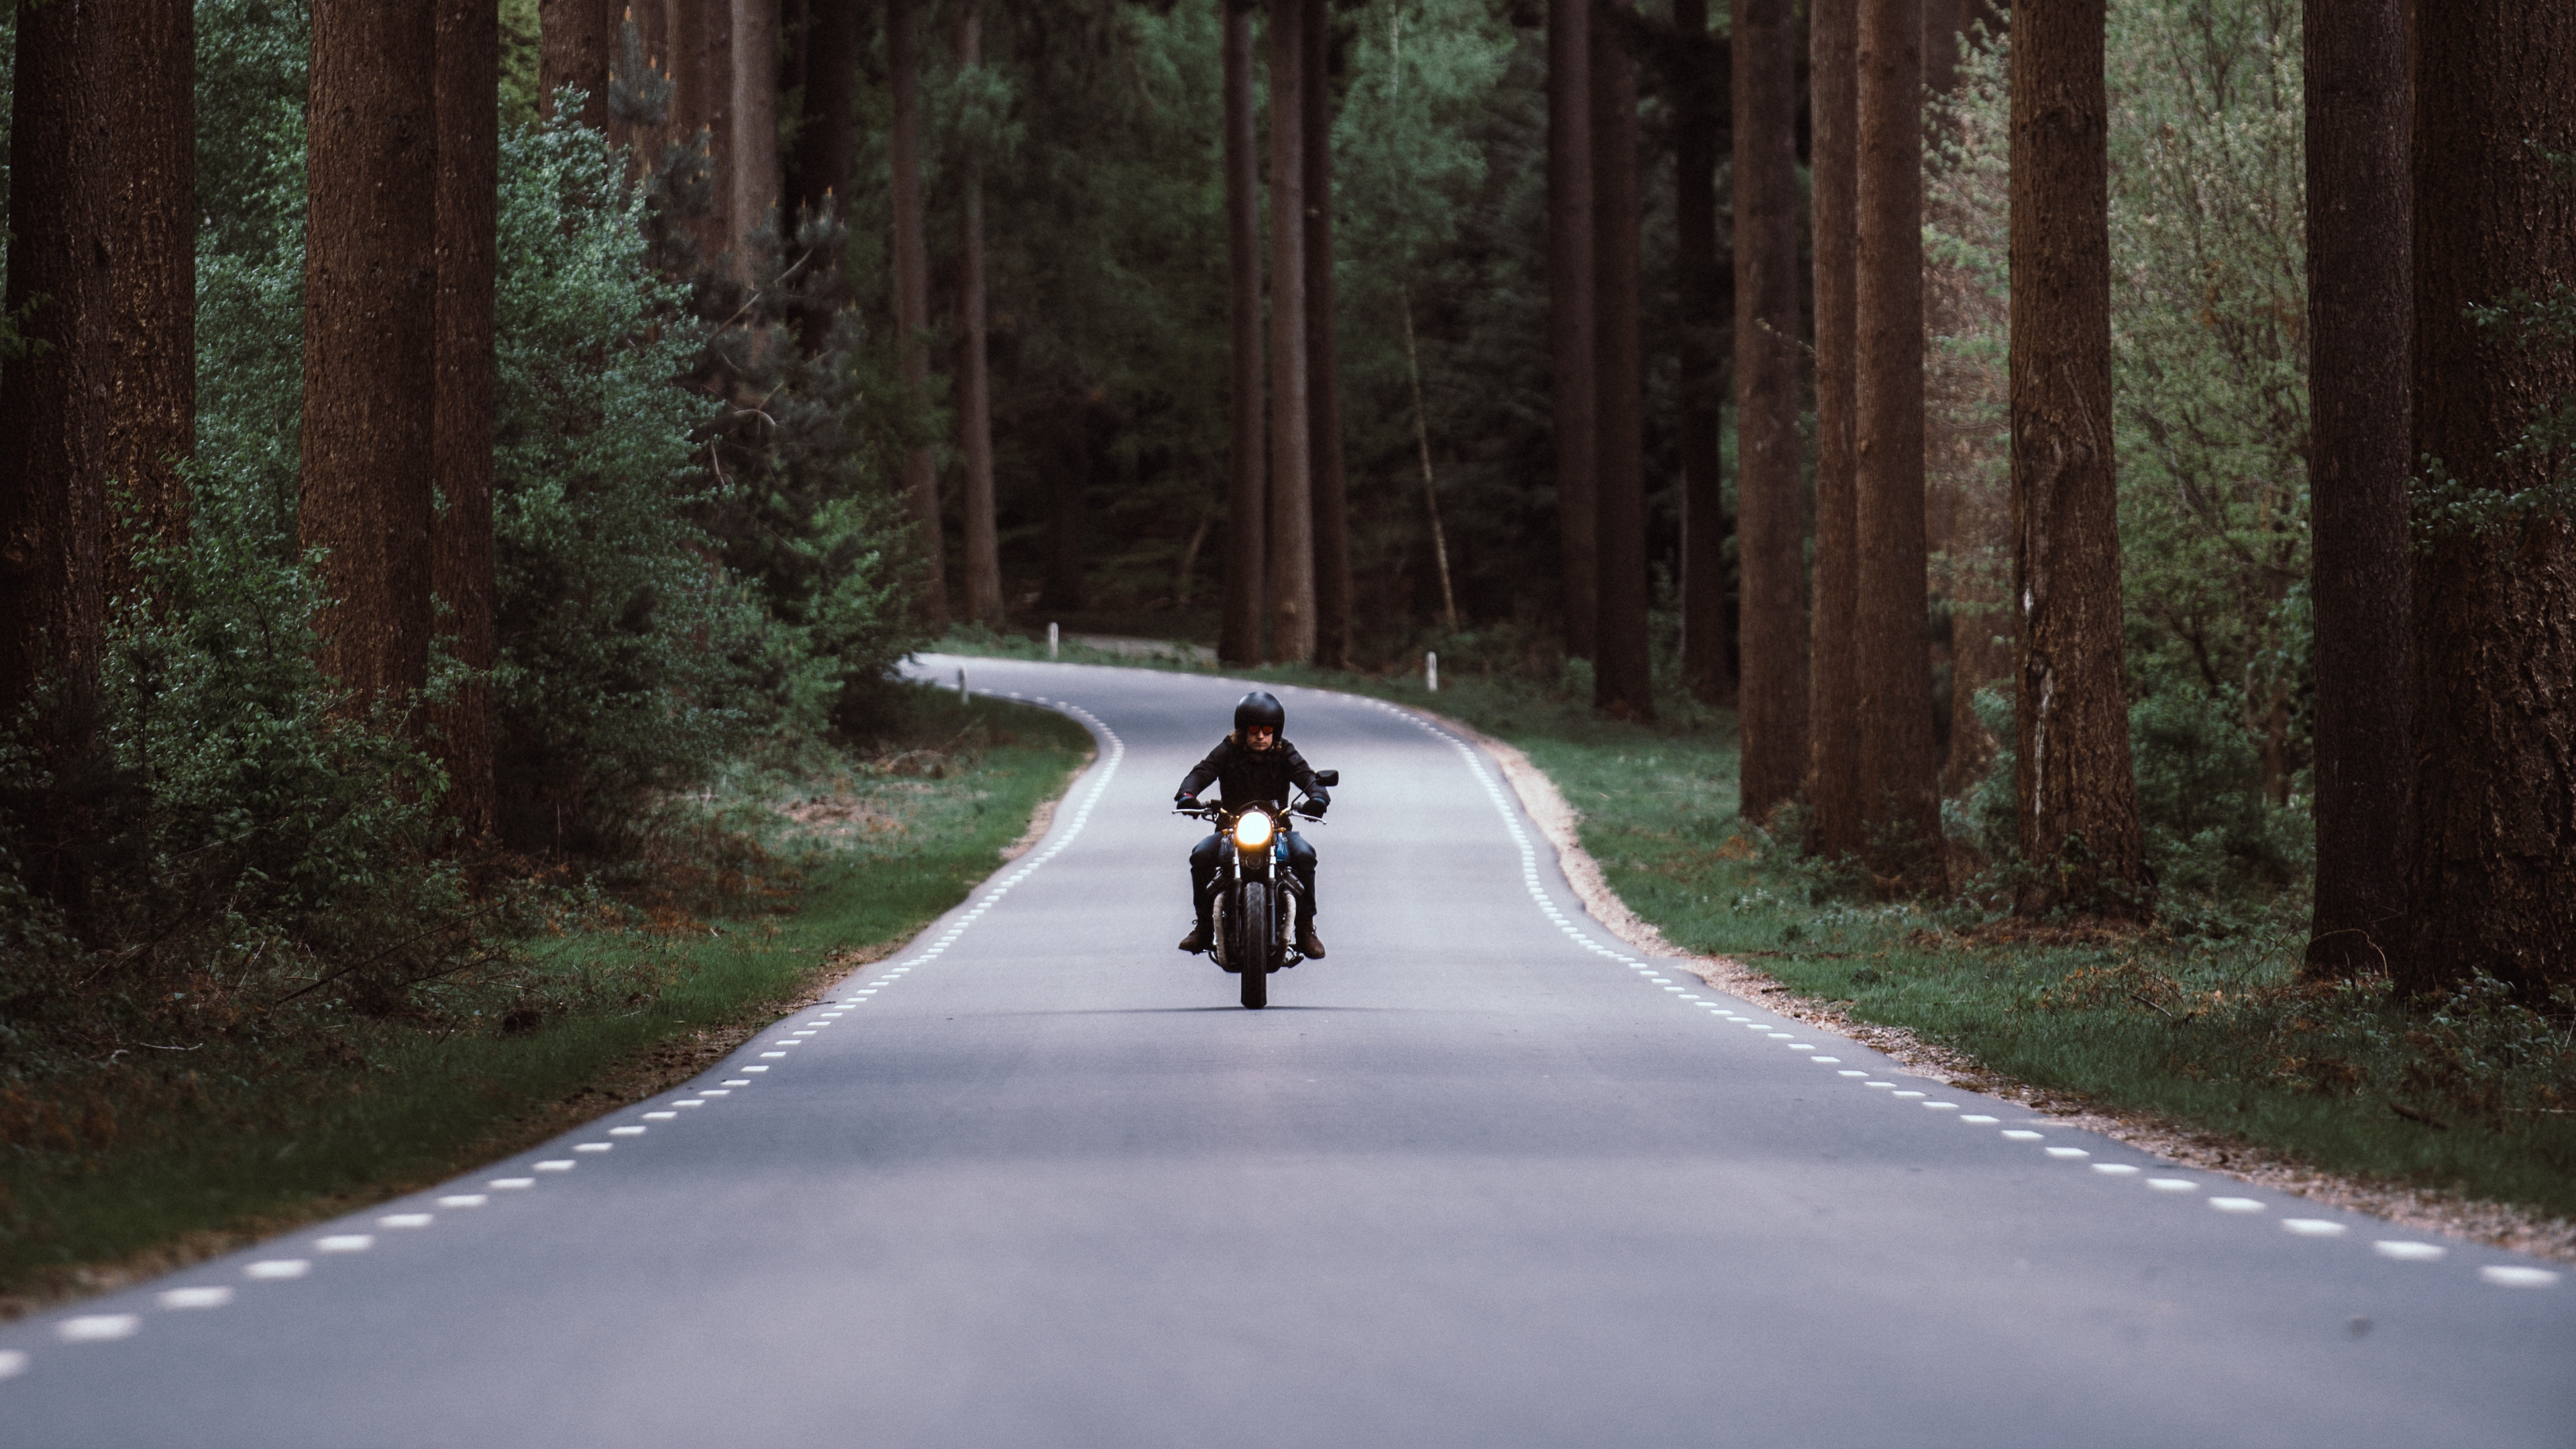 motorcyclist motorcycle road forest movement turn 4k 1536018429 - motorcyclist, motorcycle, road, forest, movement, turn 4k - Road, motorcyclist, Motorcycle